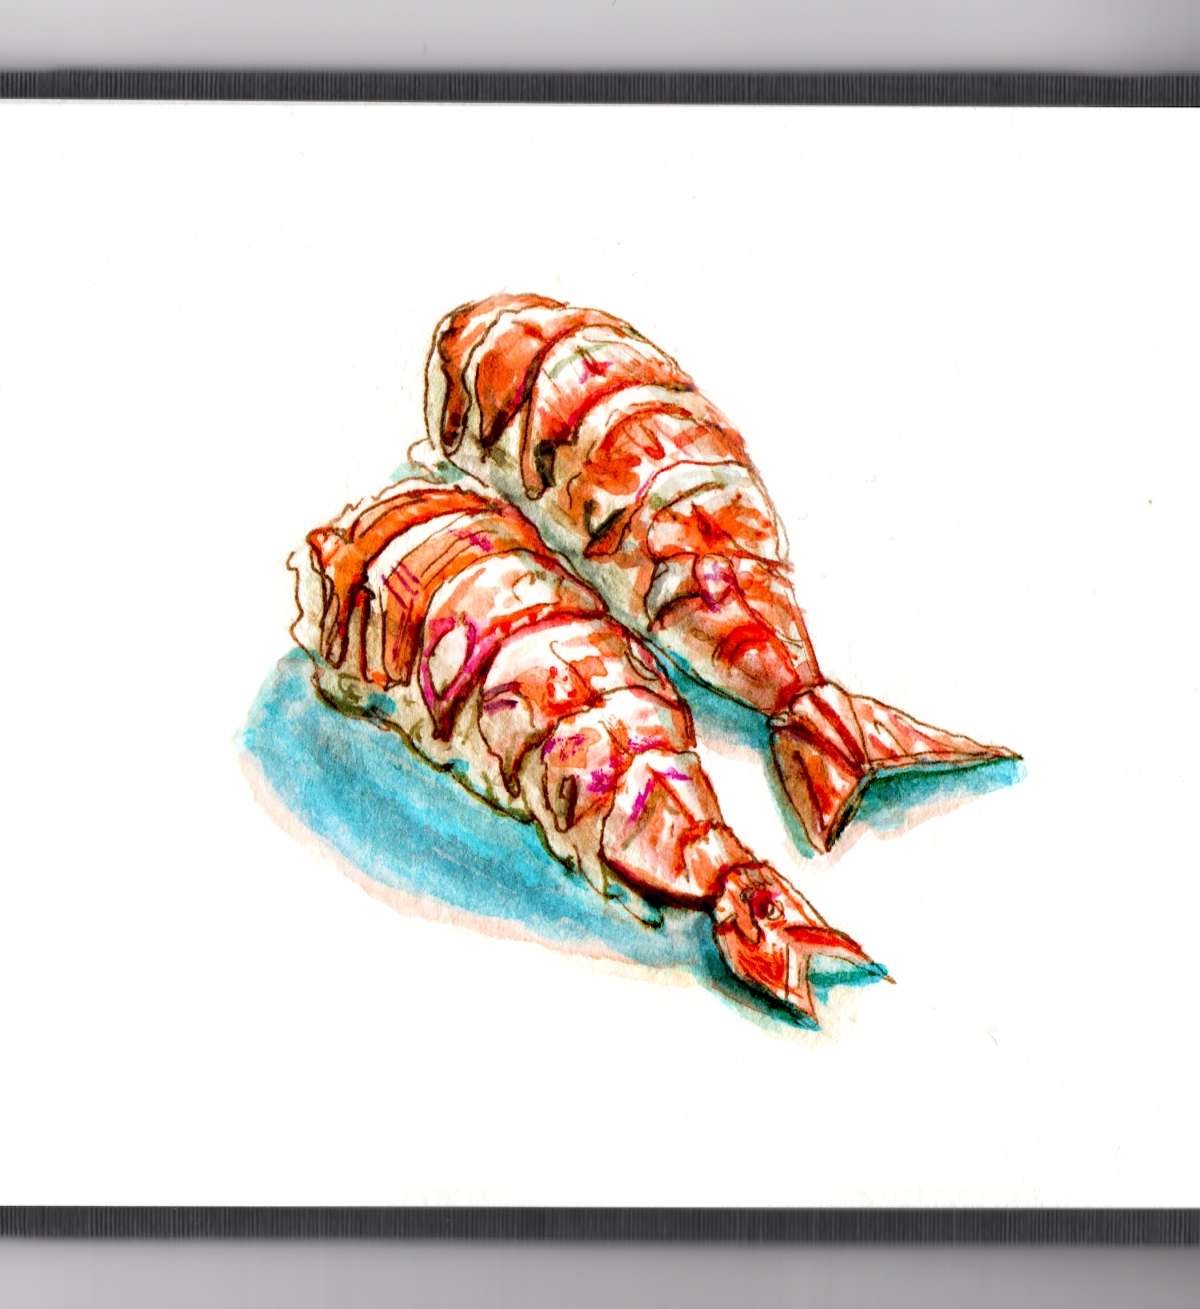 Day 25 - It Takes Two - Shrimp Sushi Watercolor - #doodlewash